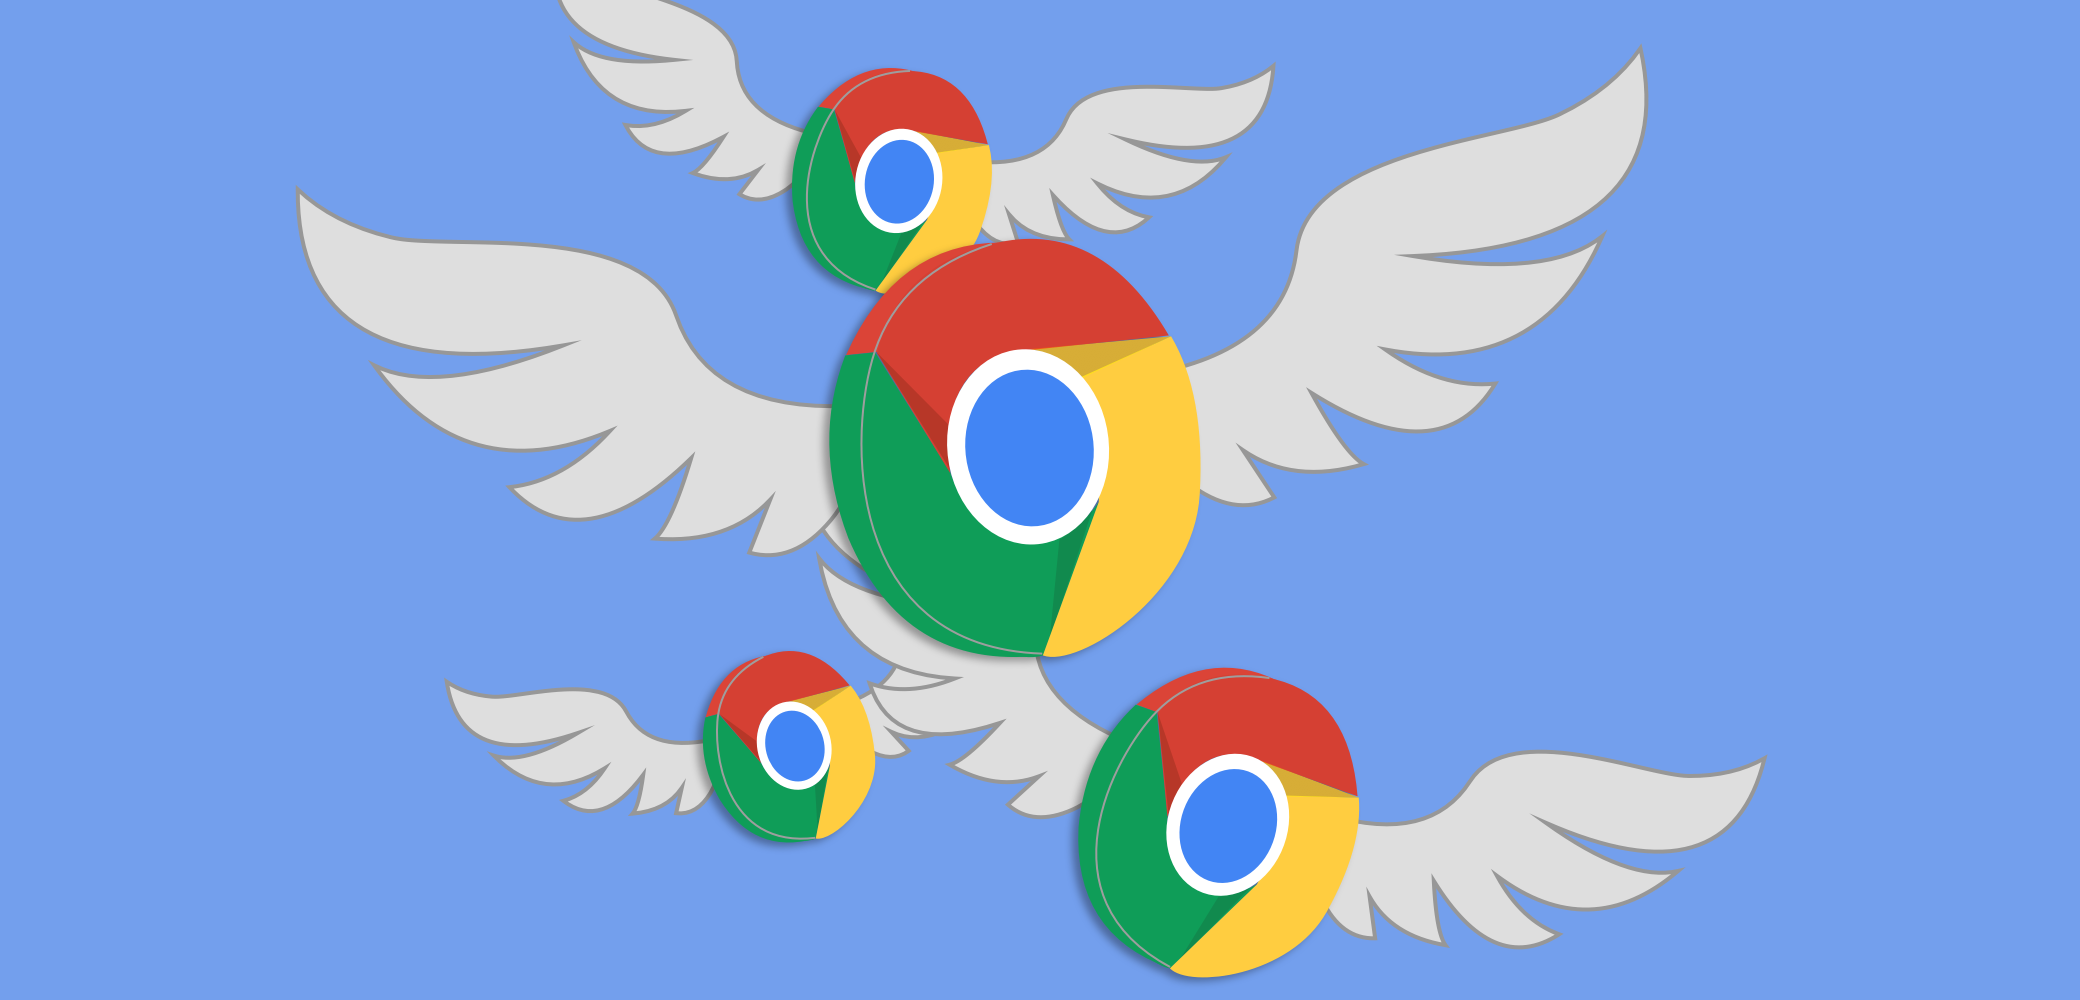 Google's FLoC may not fly